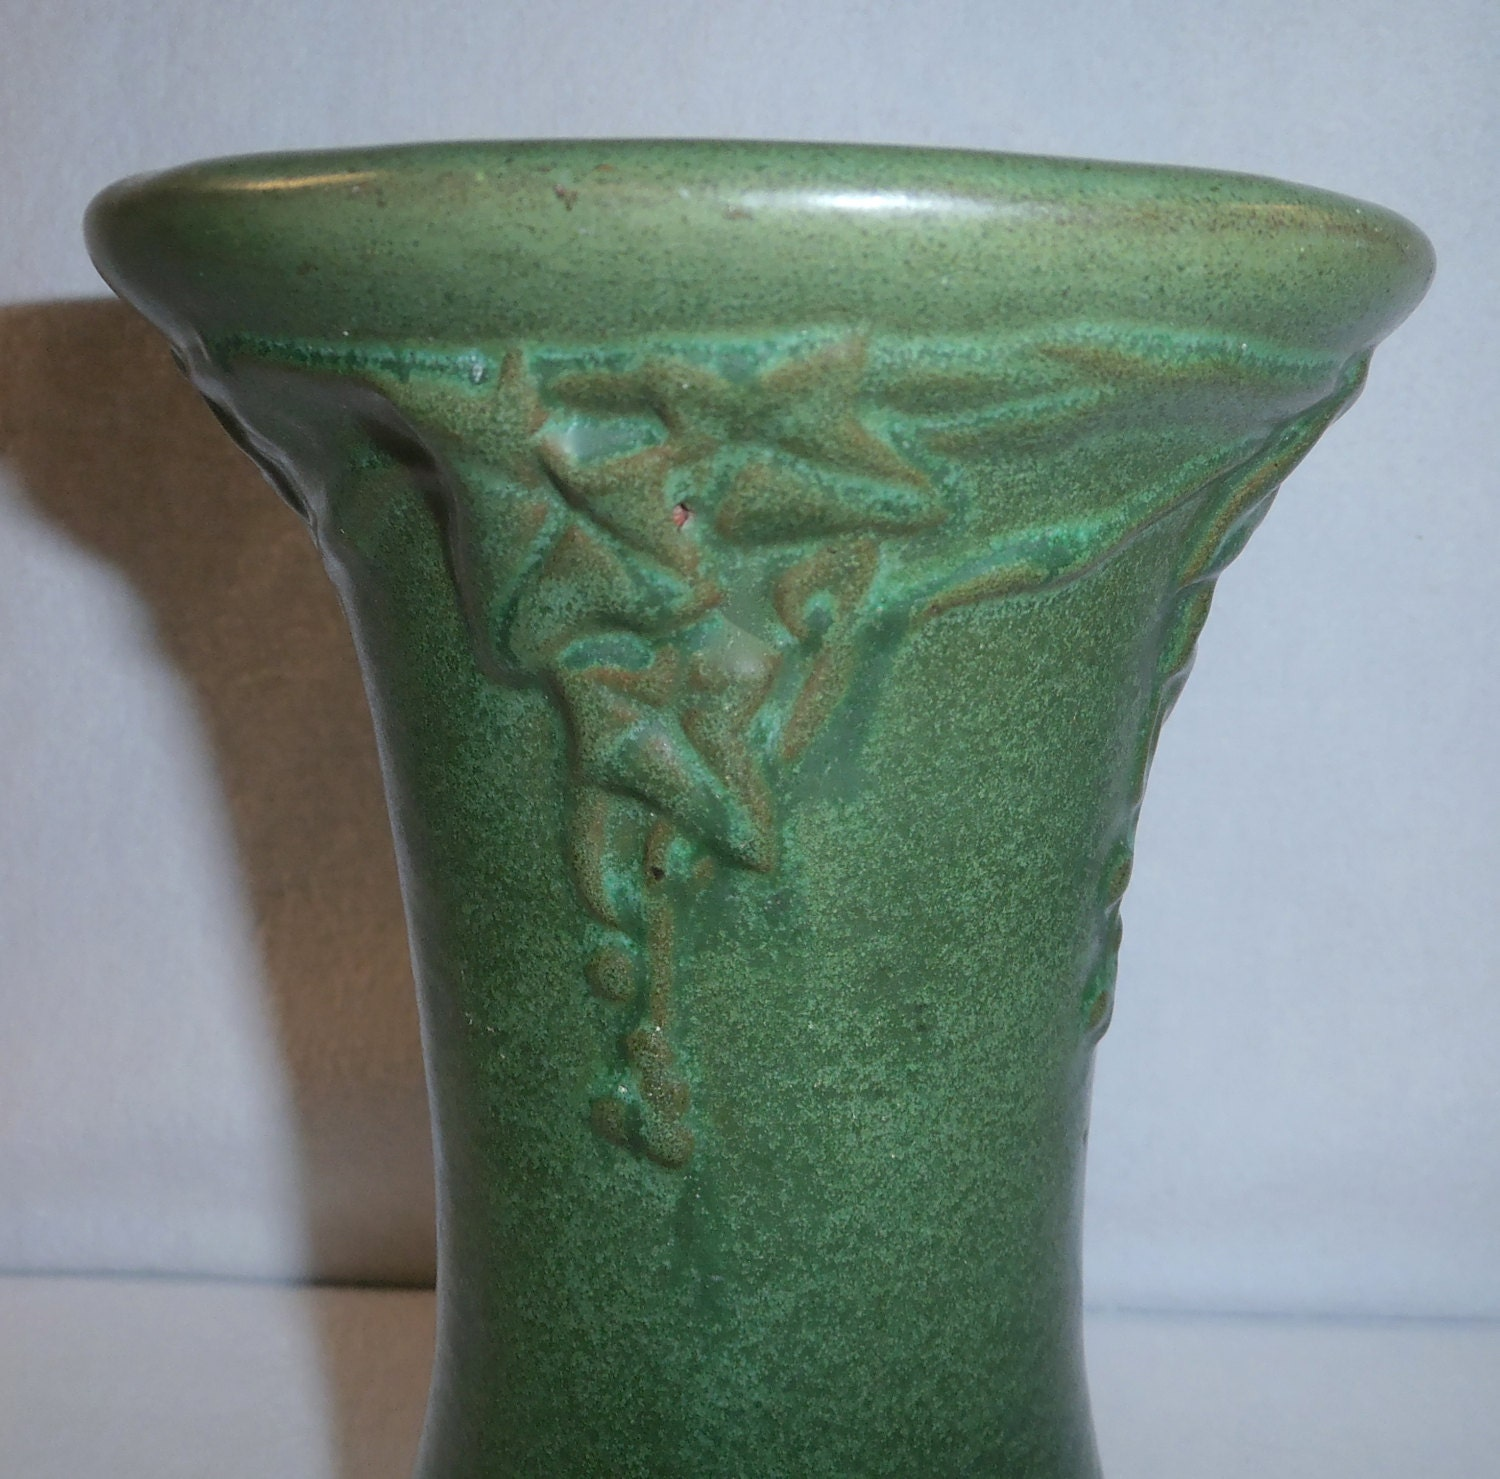 Peters and reed vase matte green pottery arts crafts vase for Arts and crafts vases pottery